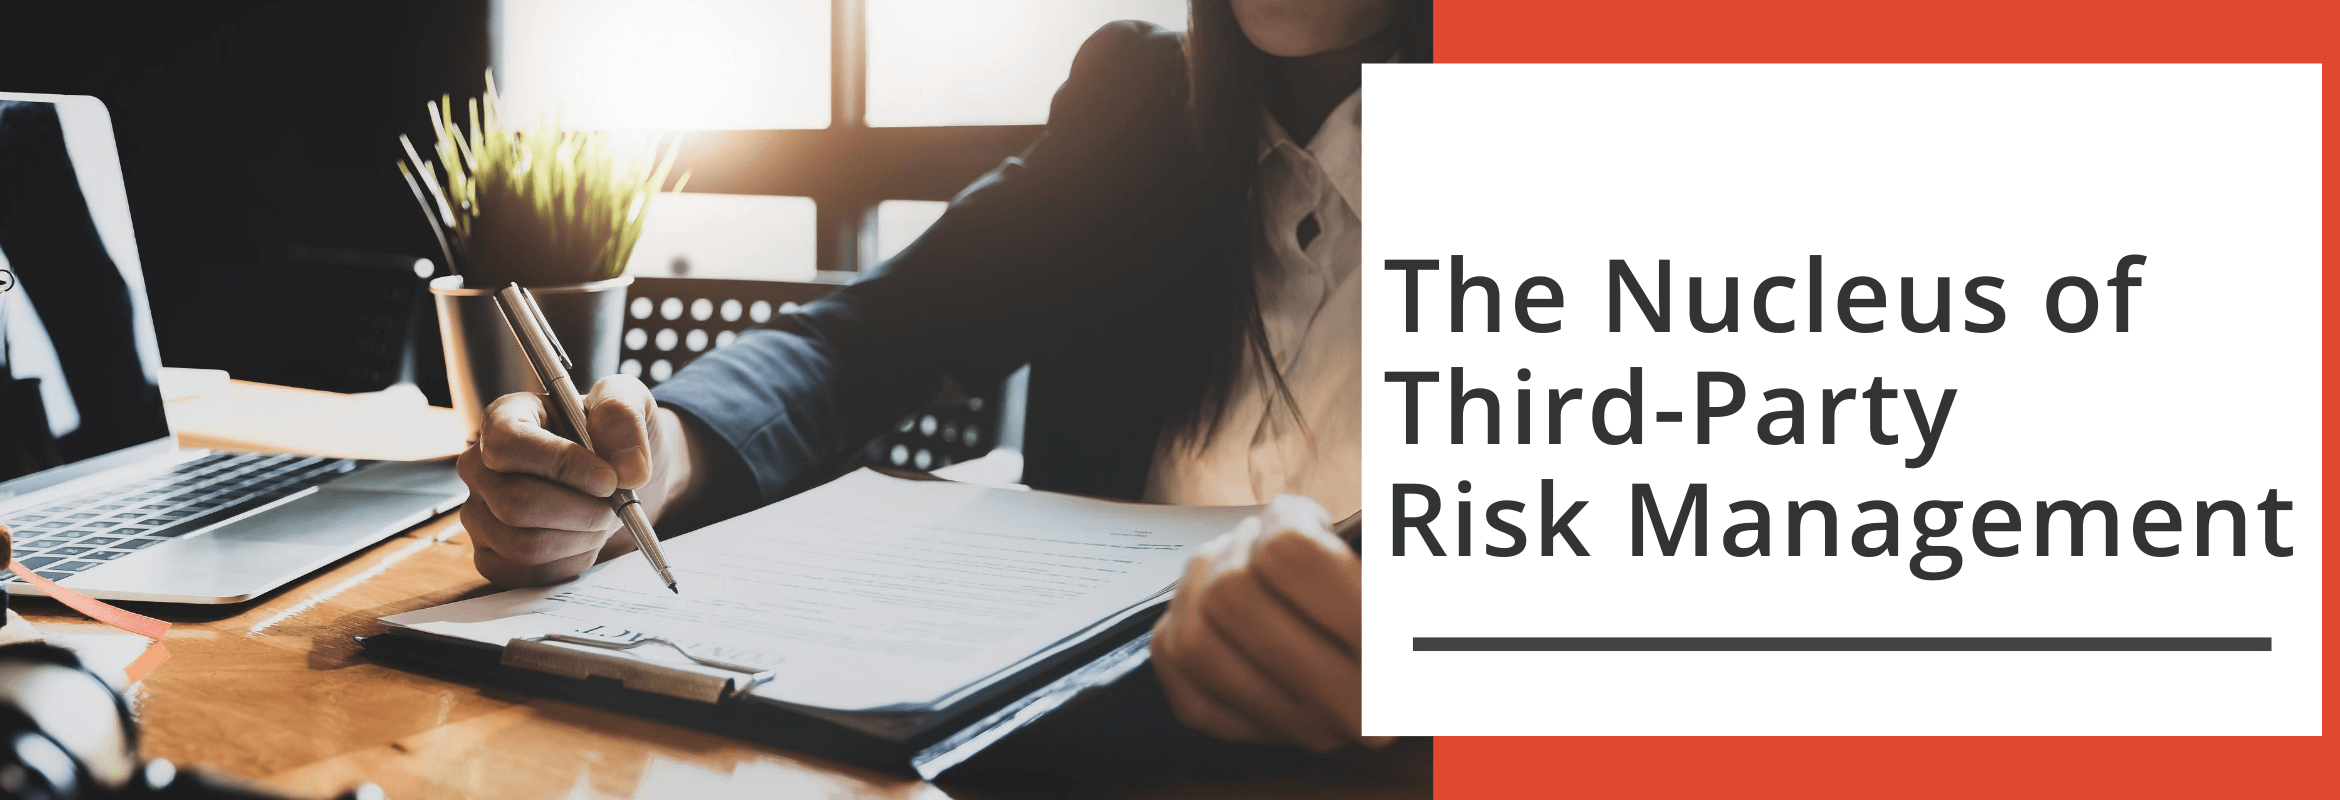 The Relationship Manager is the first line of defense in third-party risk management.